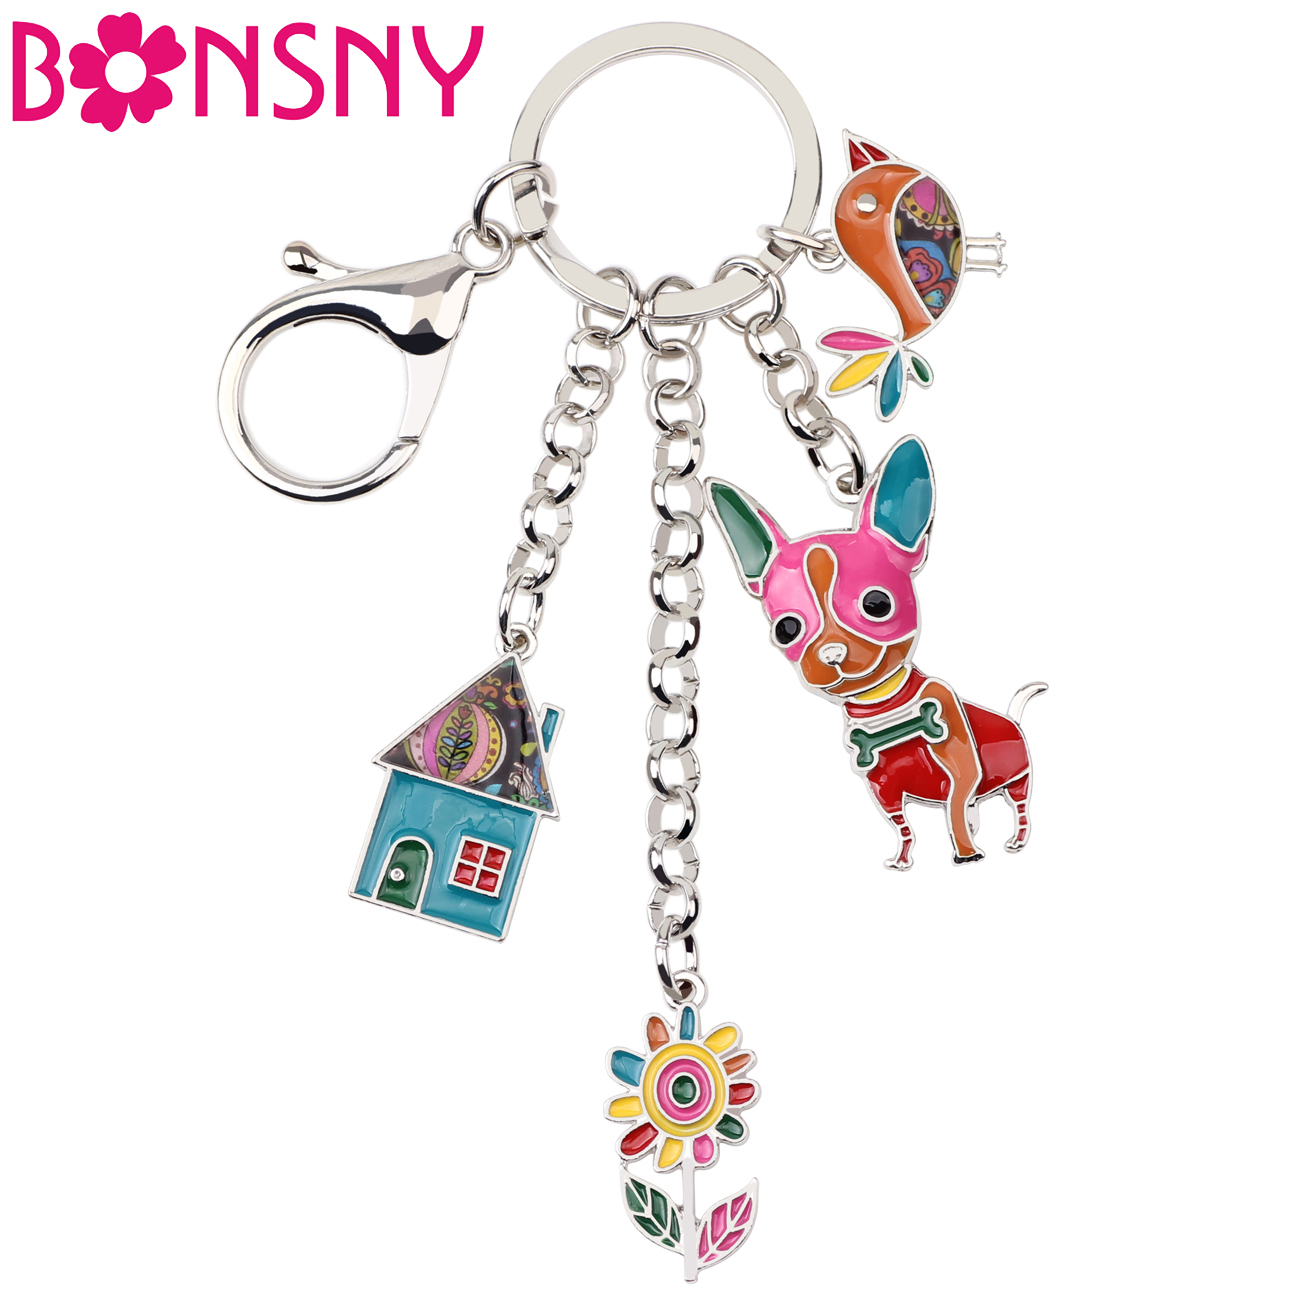 Bonsny Enamel Metal Chihuahua Dog Bird Flower House Key Chain Keychains Ring Bag Charms Car Holder Jewelry For Women Girls Gifts